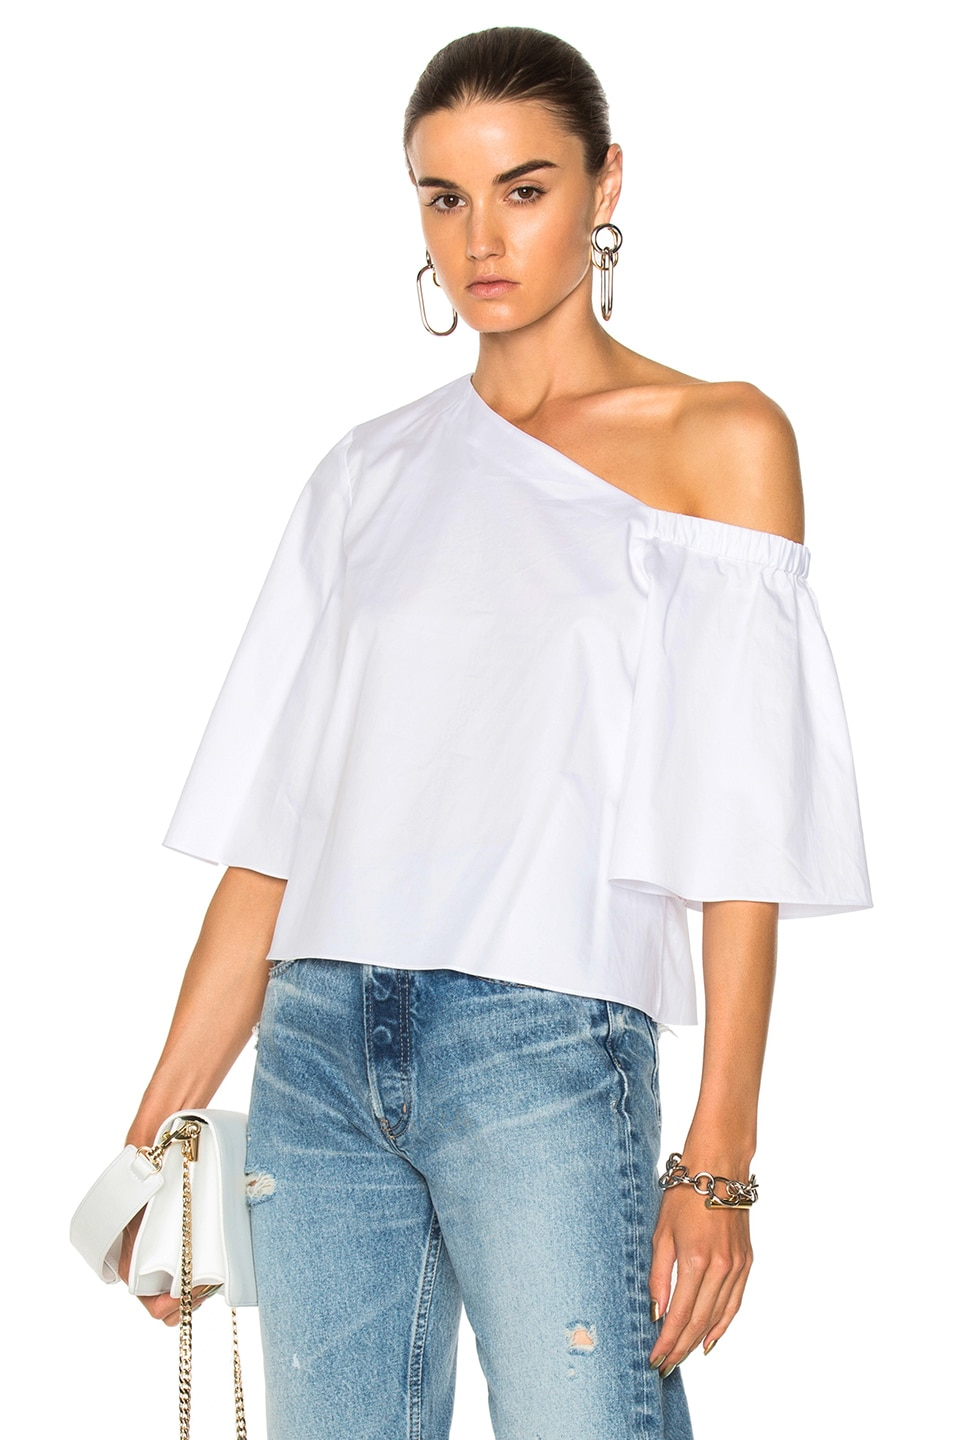 023bab1328 Image 1 of Tibi One Shoulder Bell Sleeve Top in White